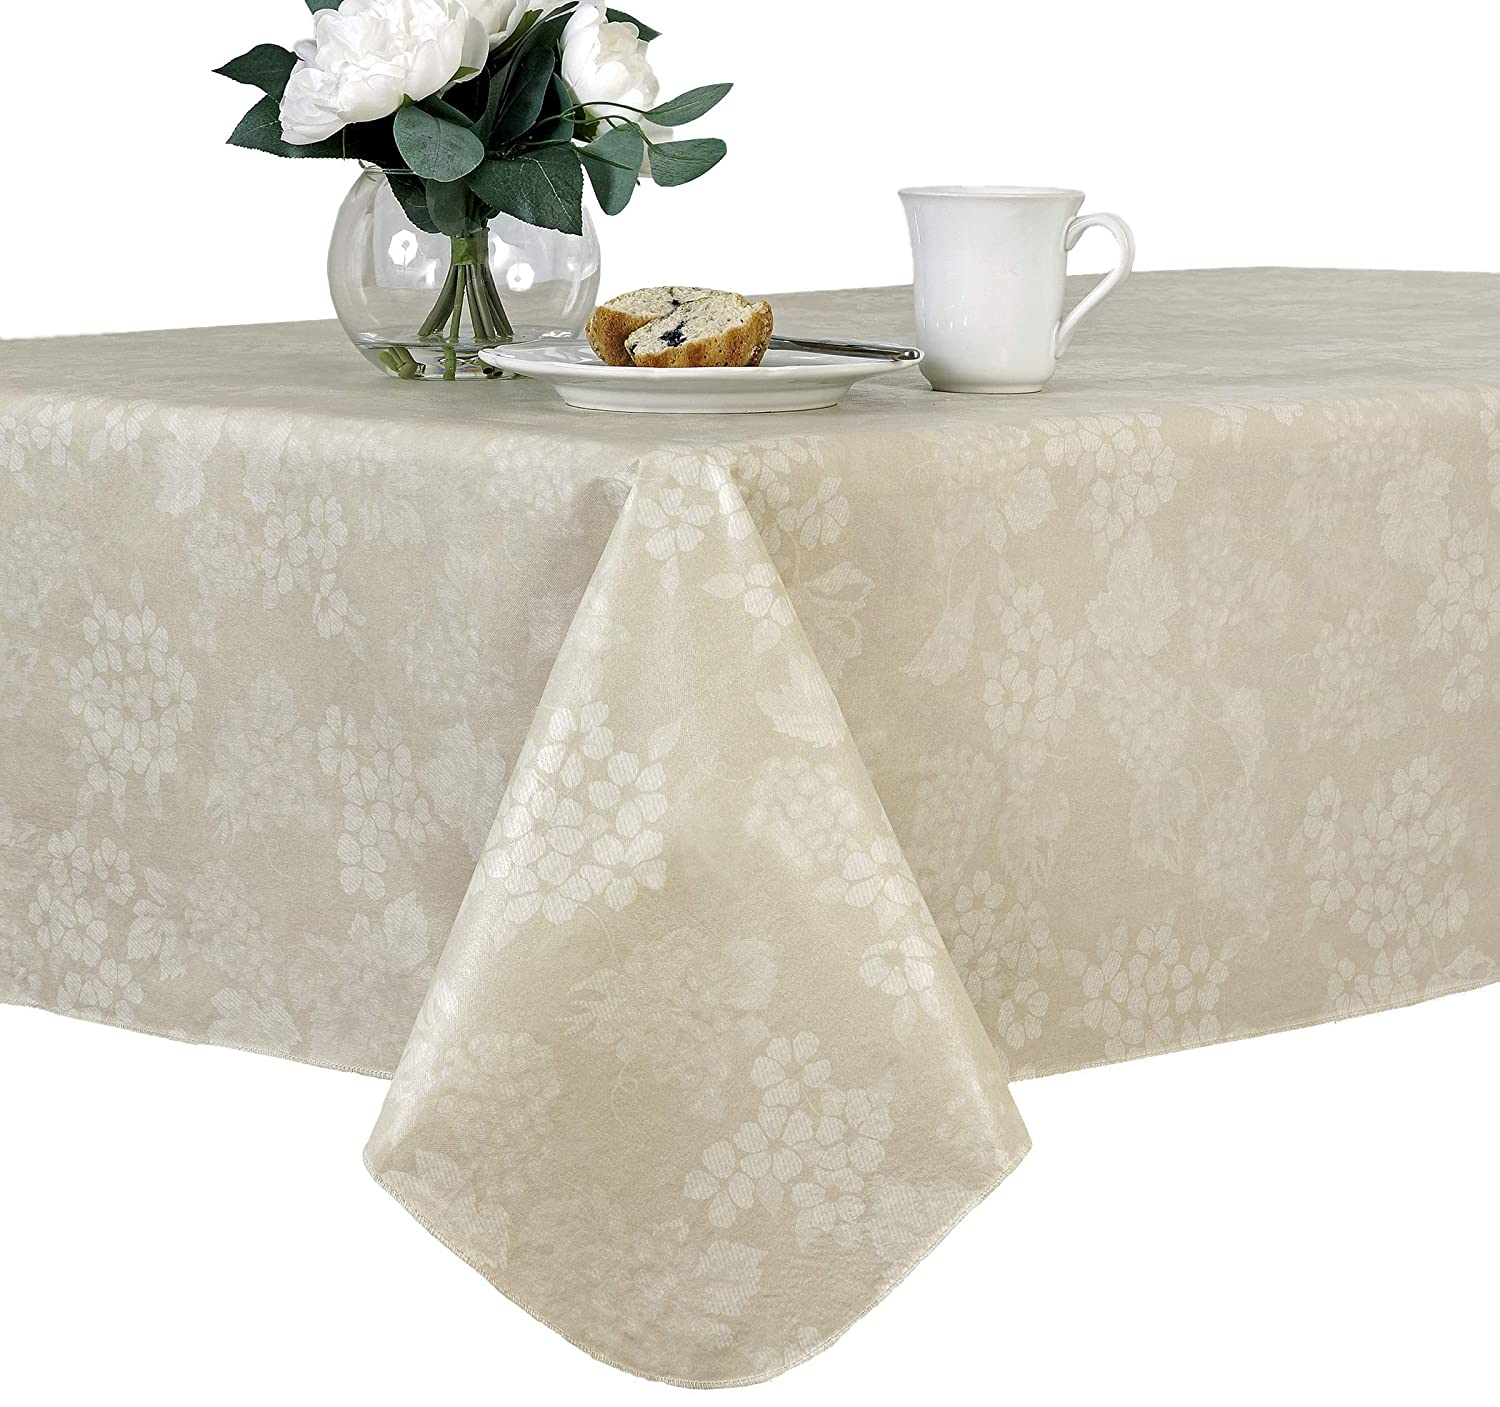 EVERYDAY LUXURIES Grapevine Flannel Backed Indoor Outdoor Vinyl Table Linens, 90-Inch Round Tablecloth, Vanilla